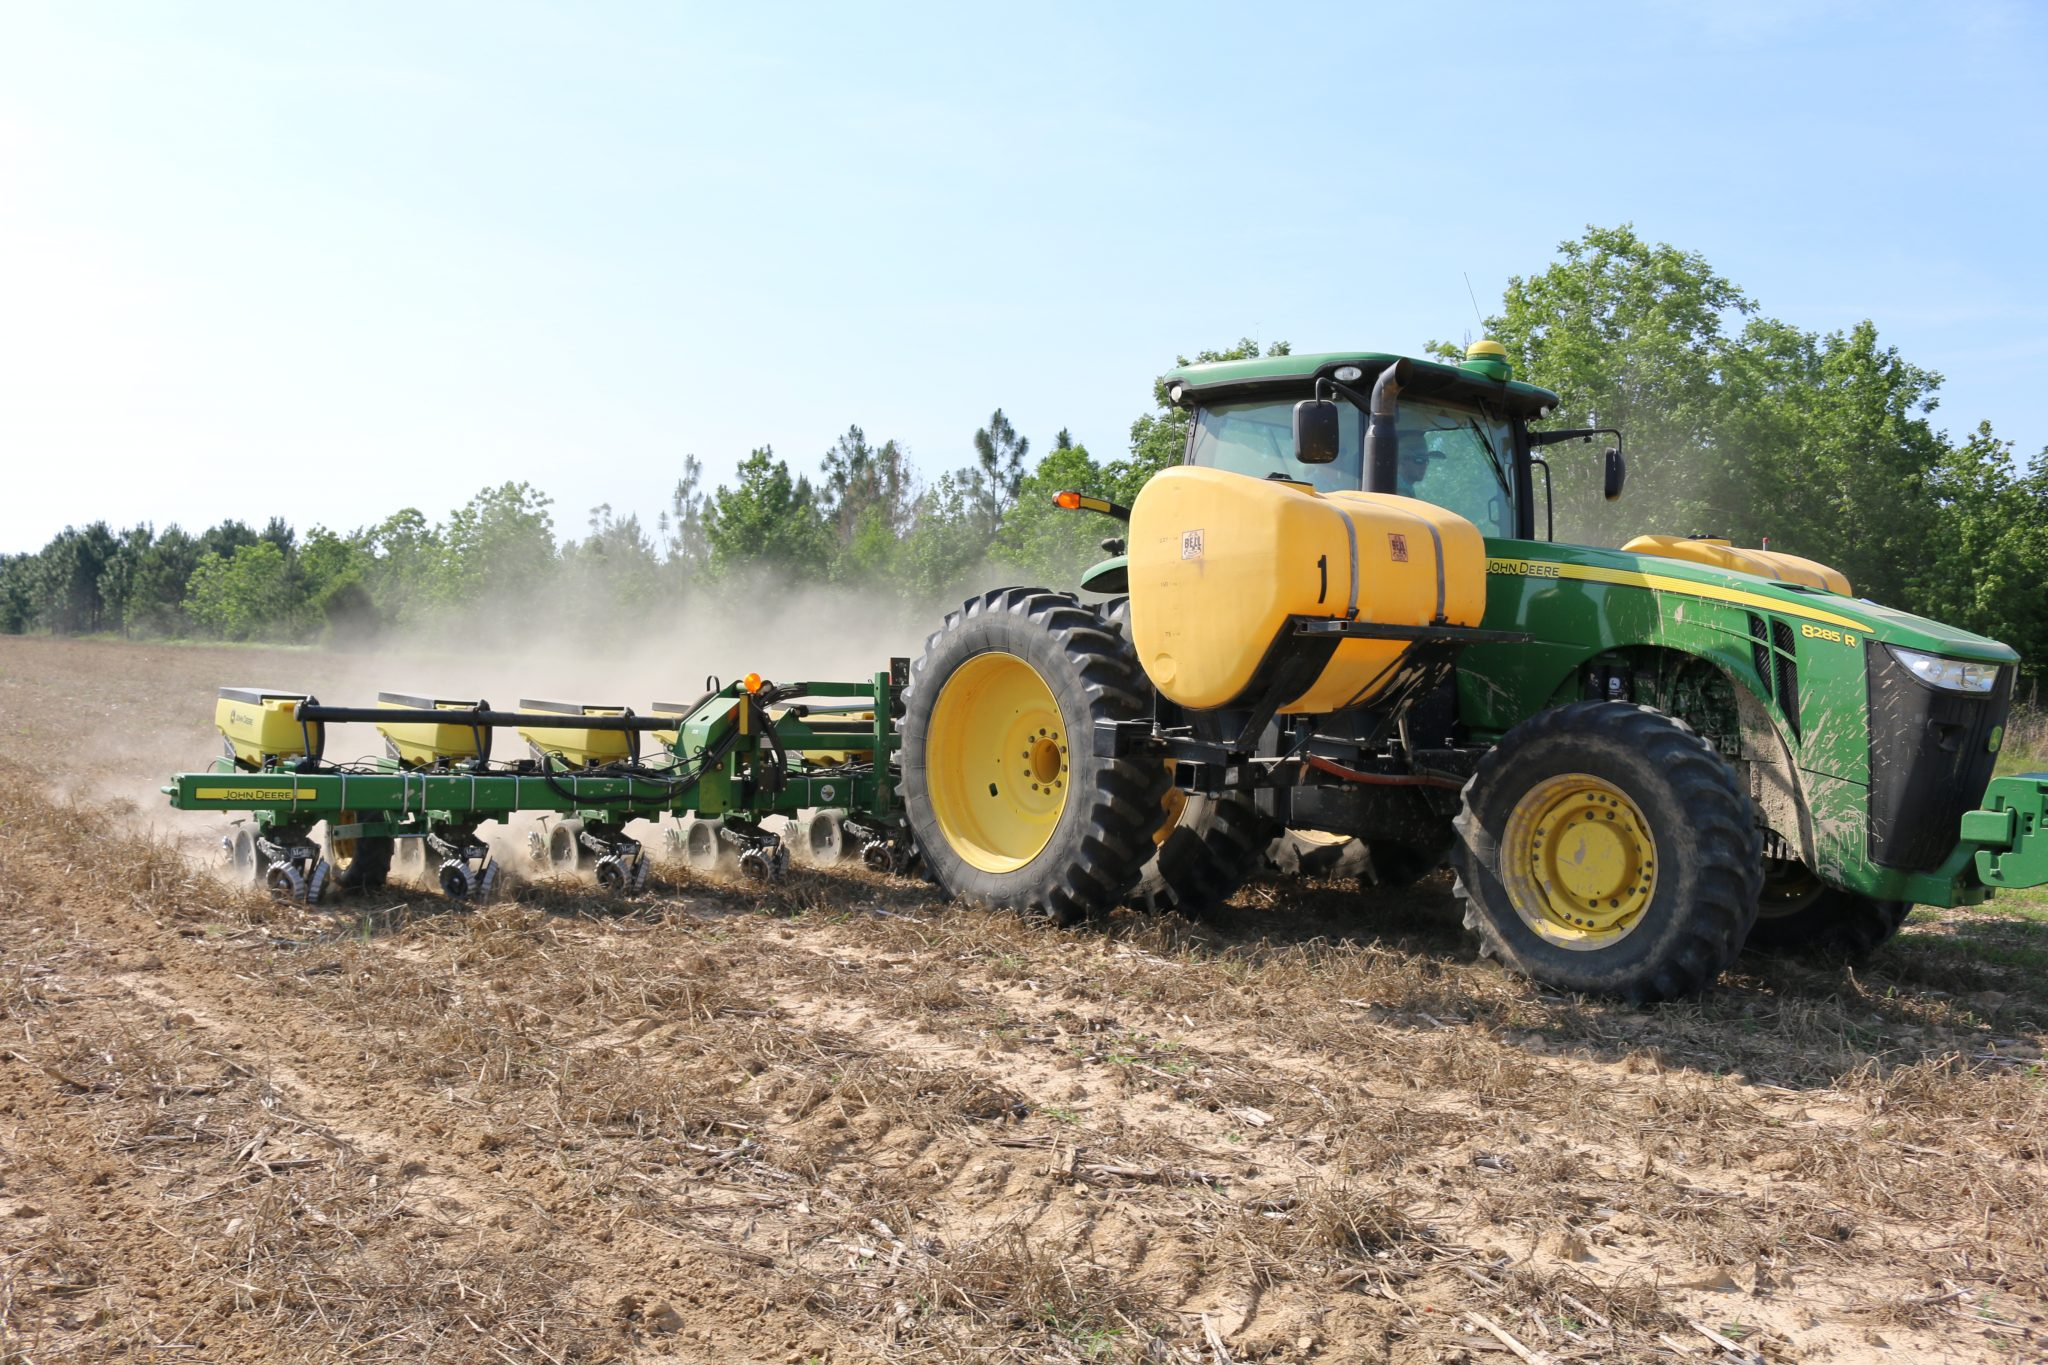 A tractor planting row crops.